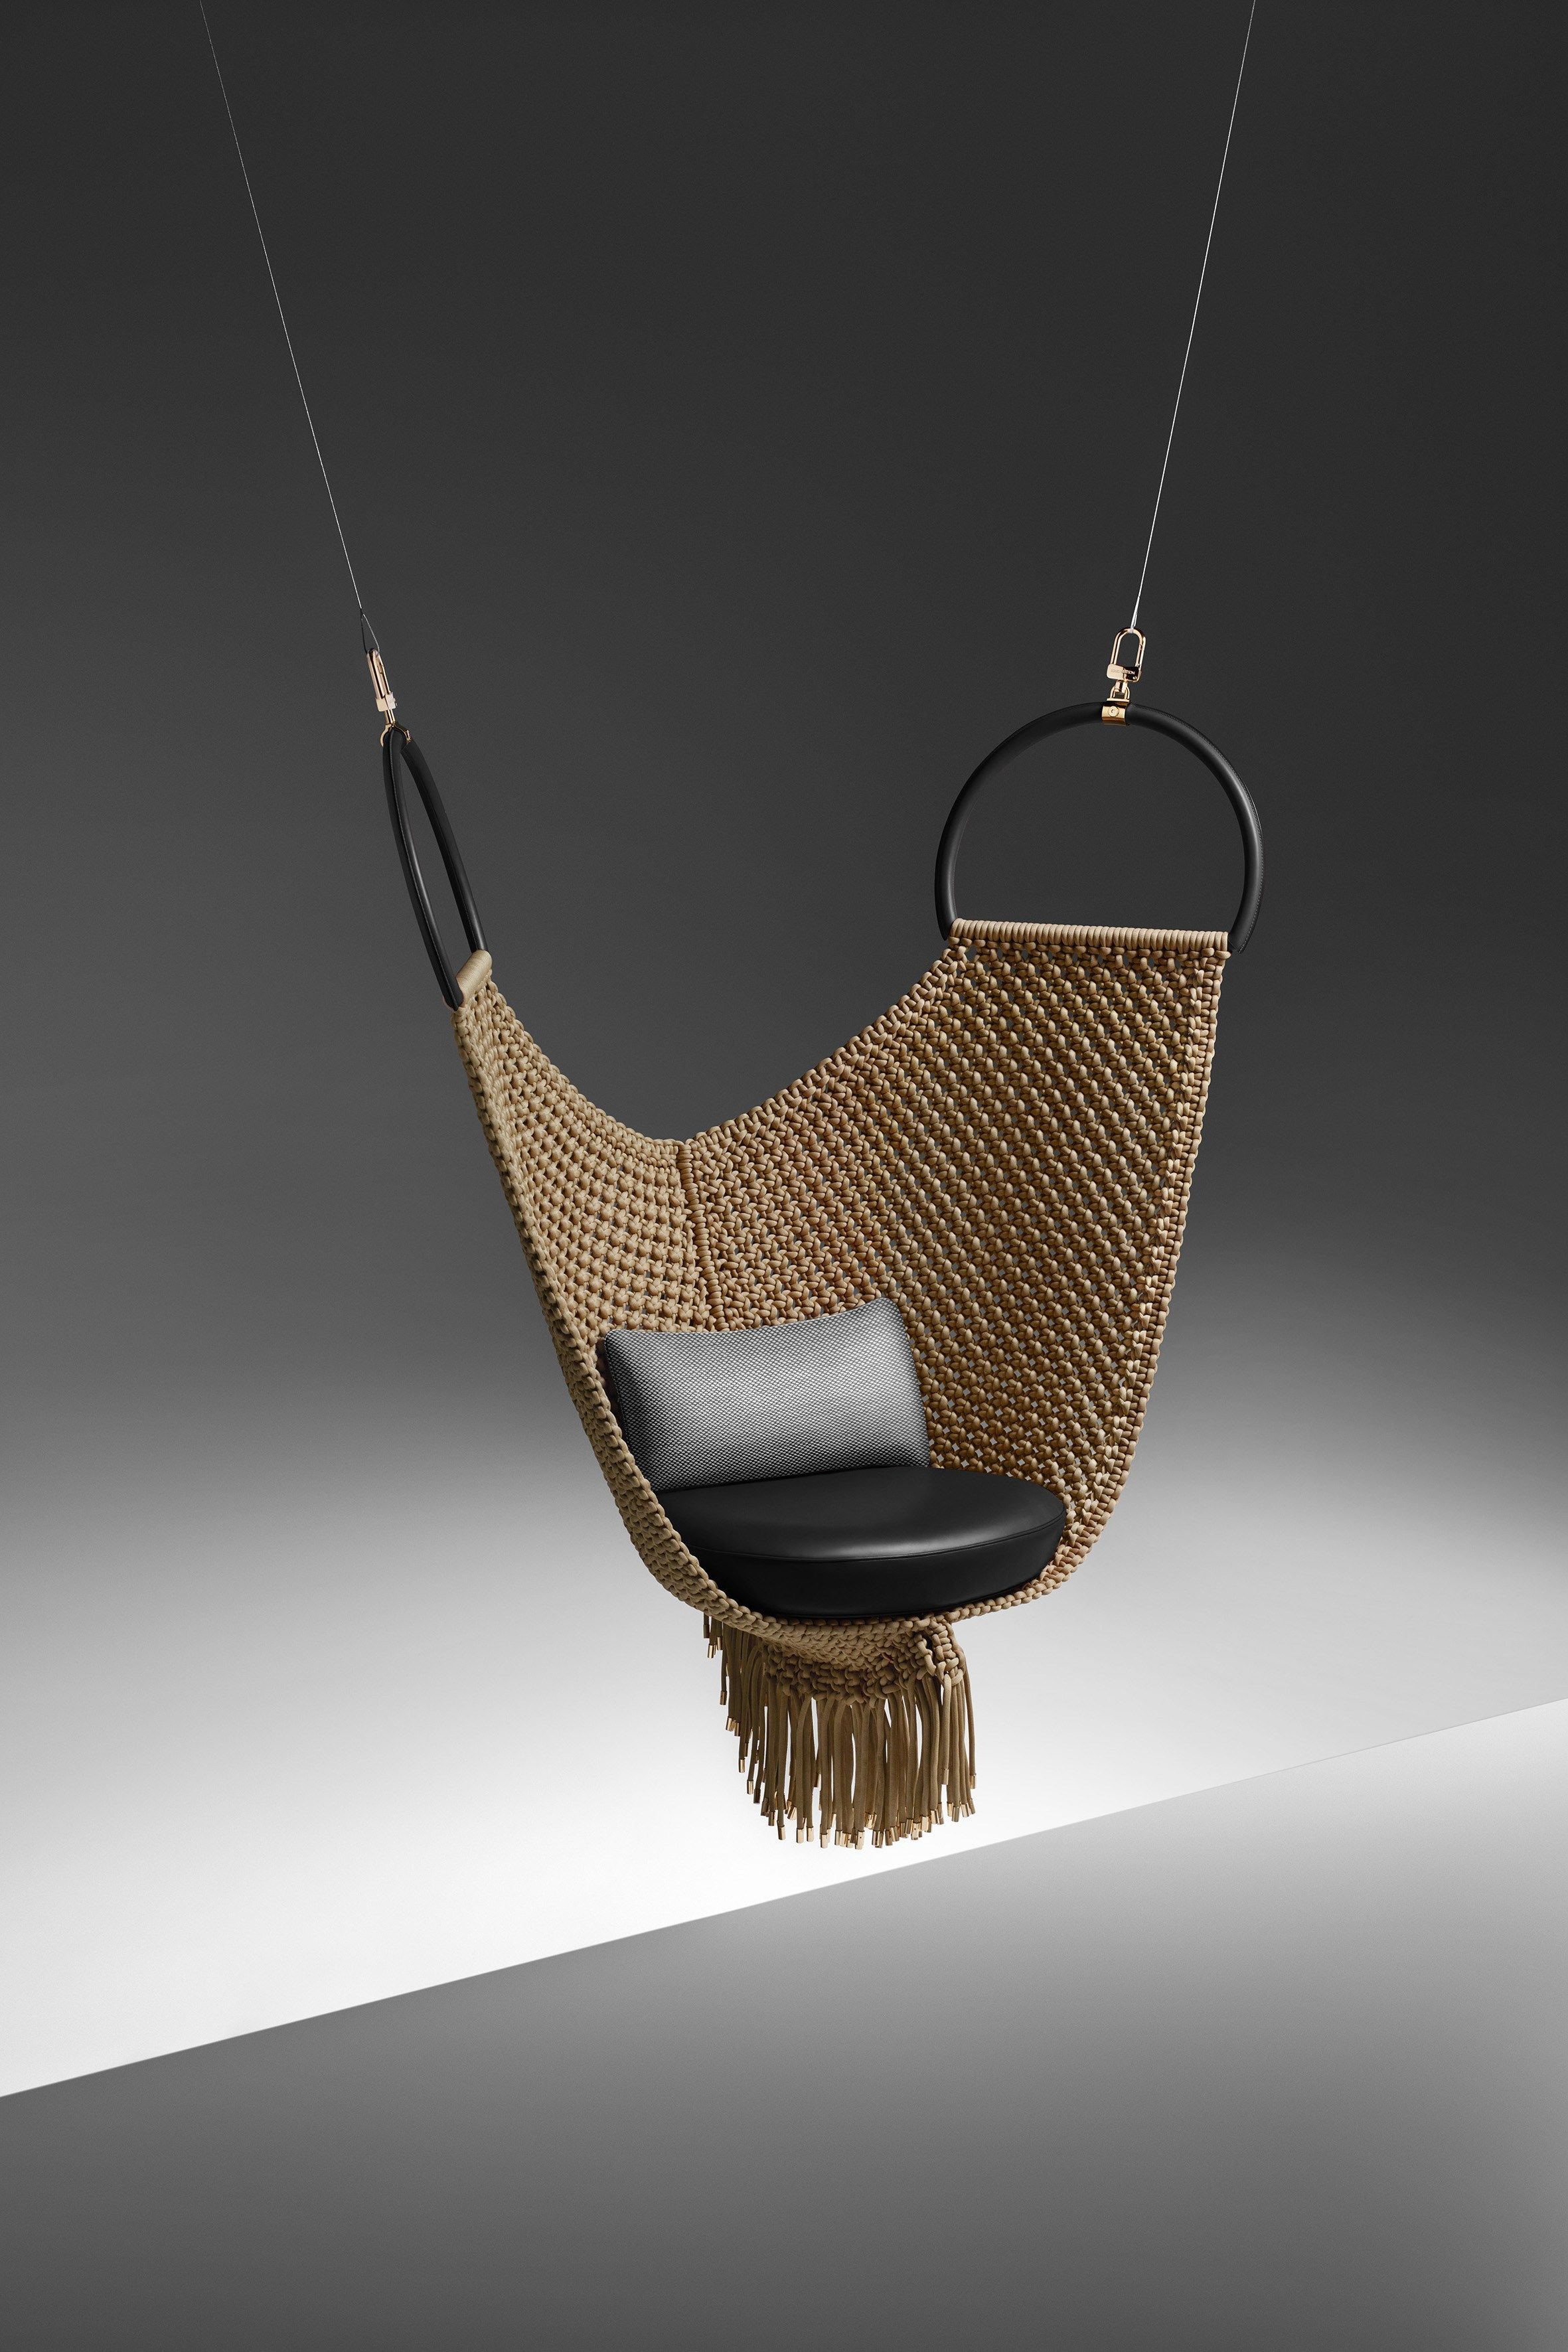 swing chair patricia urquiola indoor hanging chairs uk 100 must see limited edition furniture ideas lifestyle exclusive design www bocadolobo com luxuryfurniture limitededition